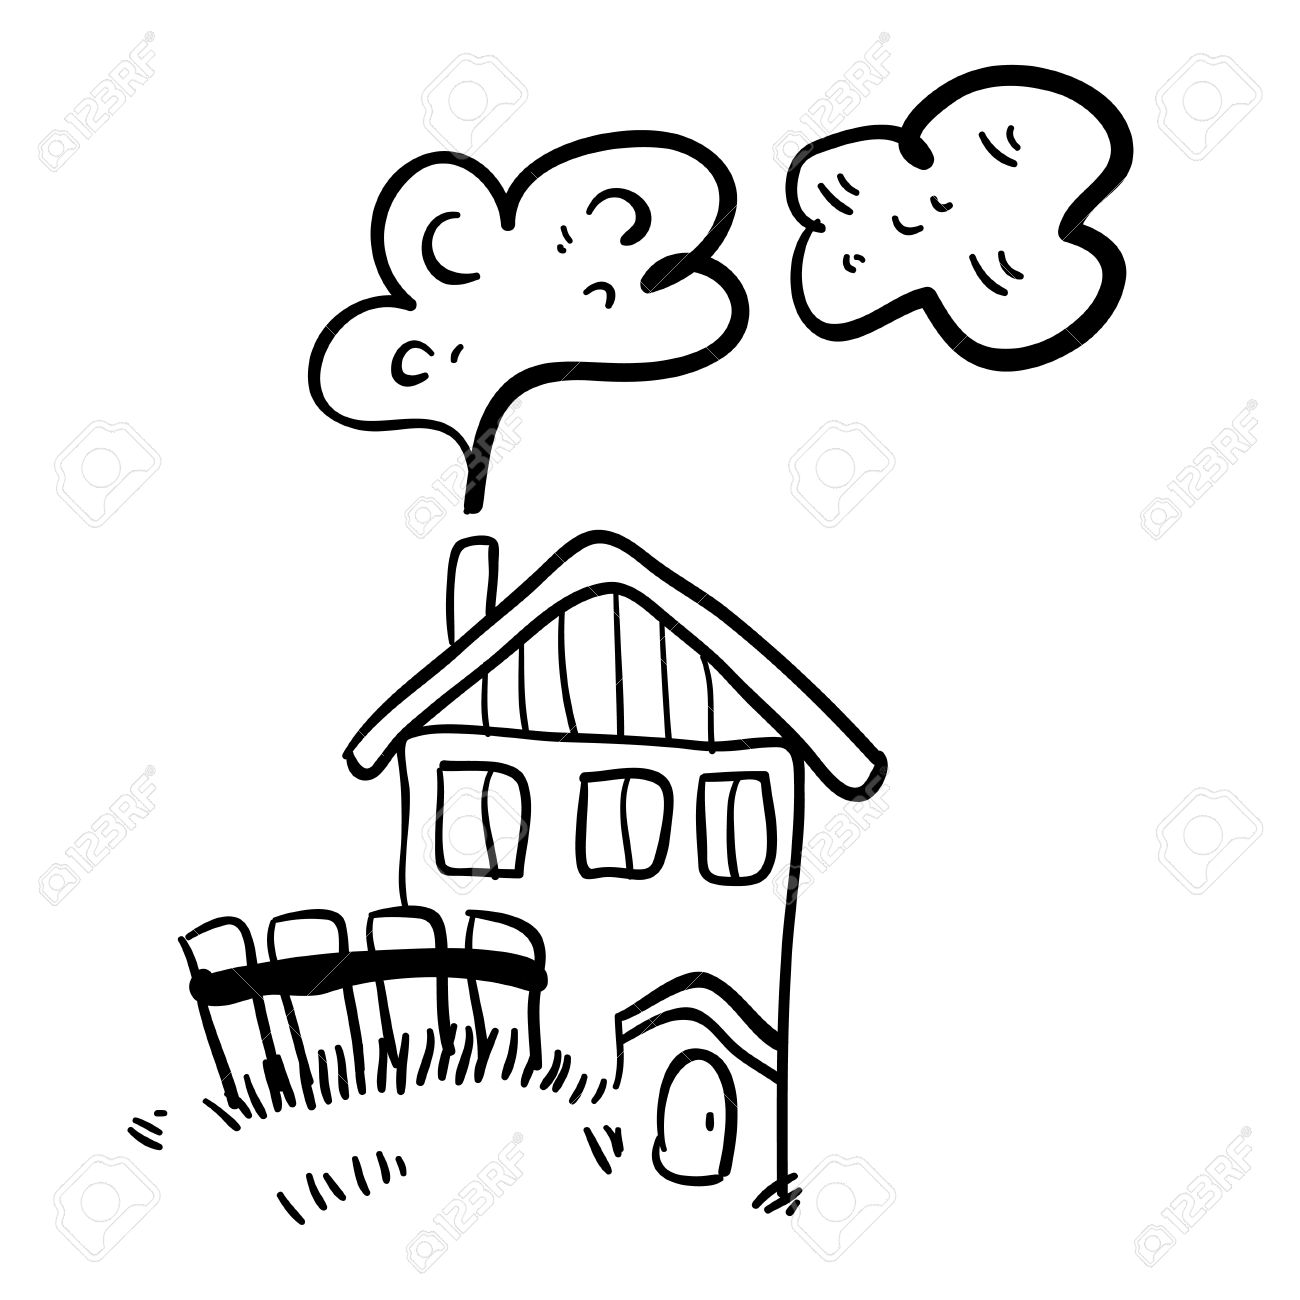 Cute Doodle Farm House On White Background Simple Illustration Funny Cartoon Old